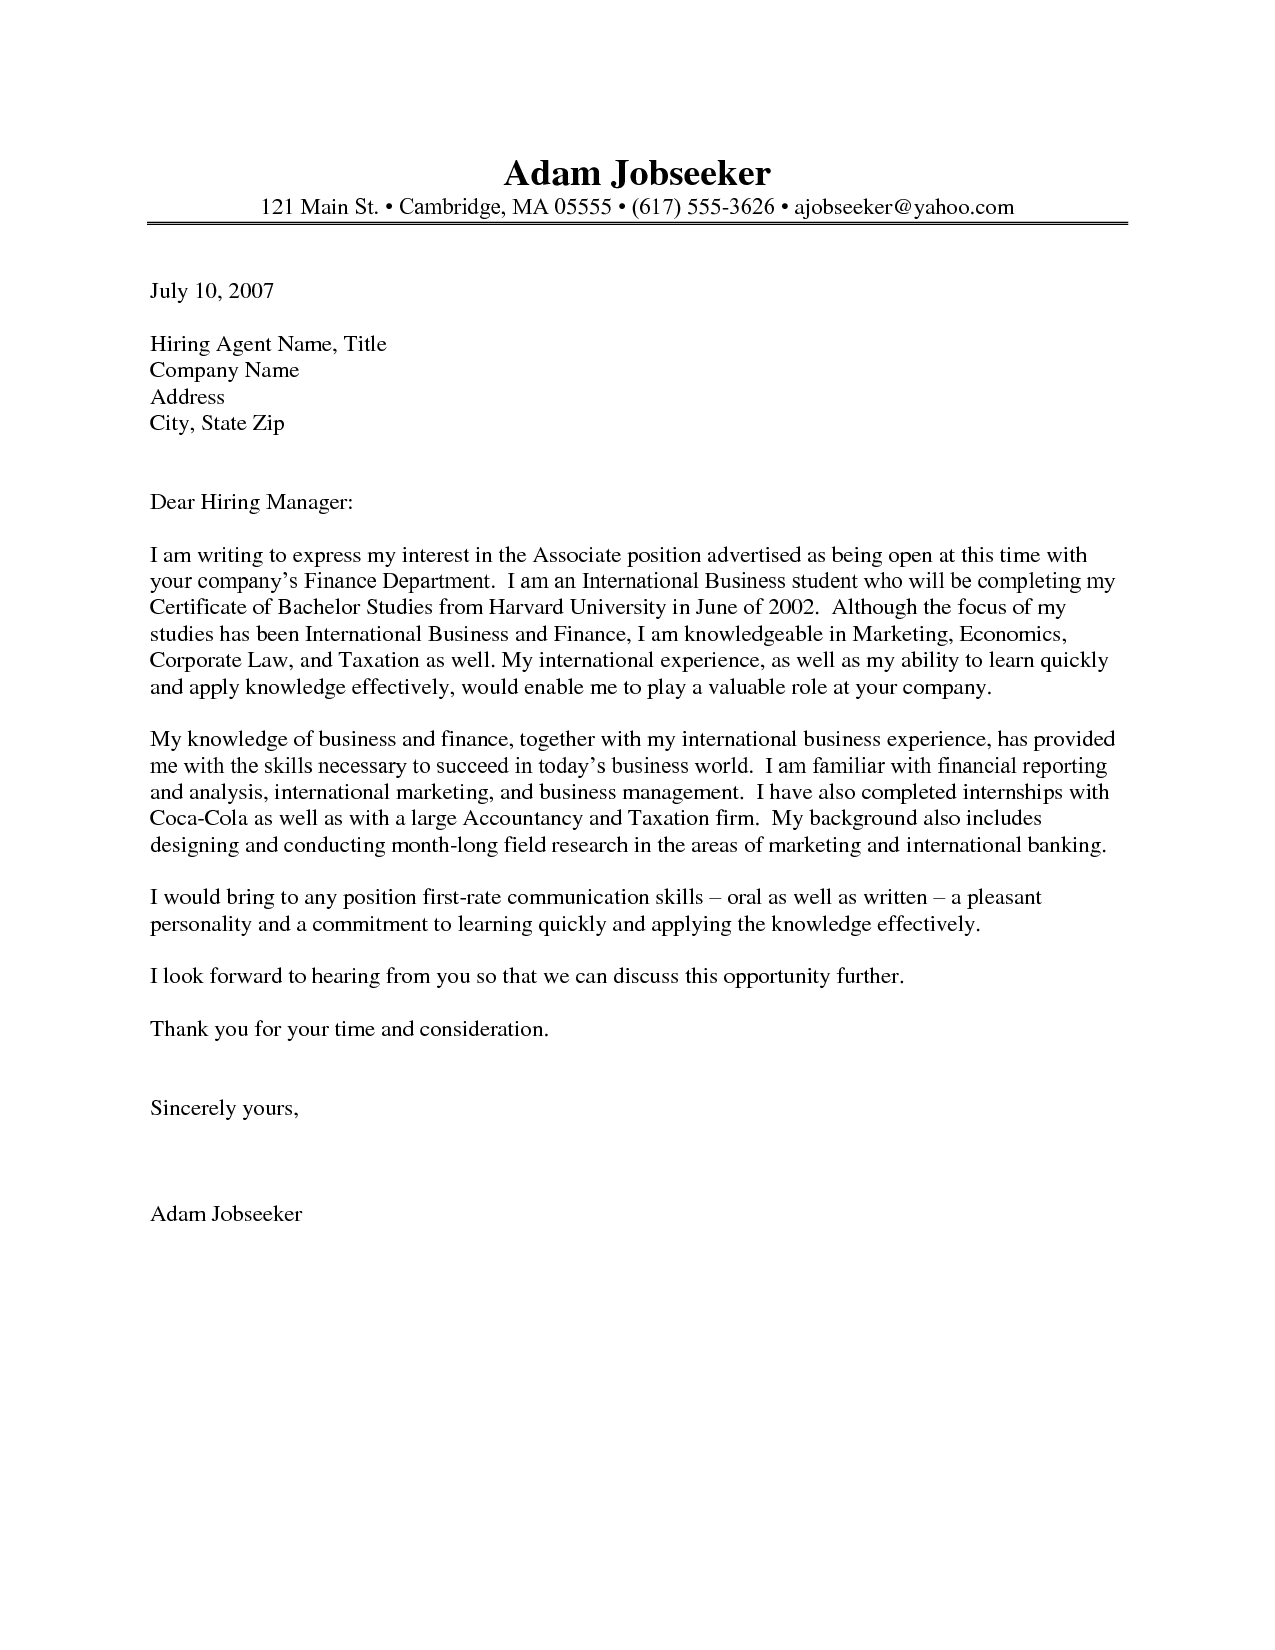 Sample of a cover letter for internship fieldstation sample of a cover letter for internship cover letter internship example altavistaventures Images